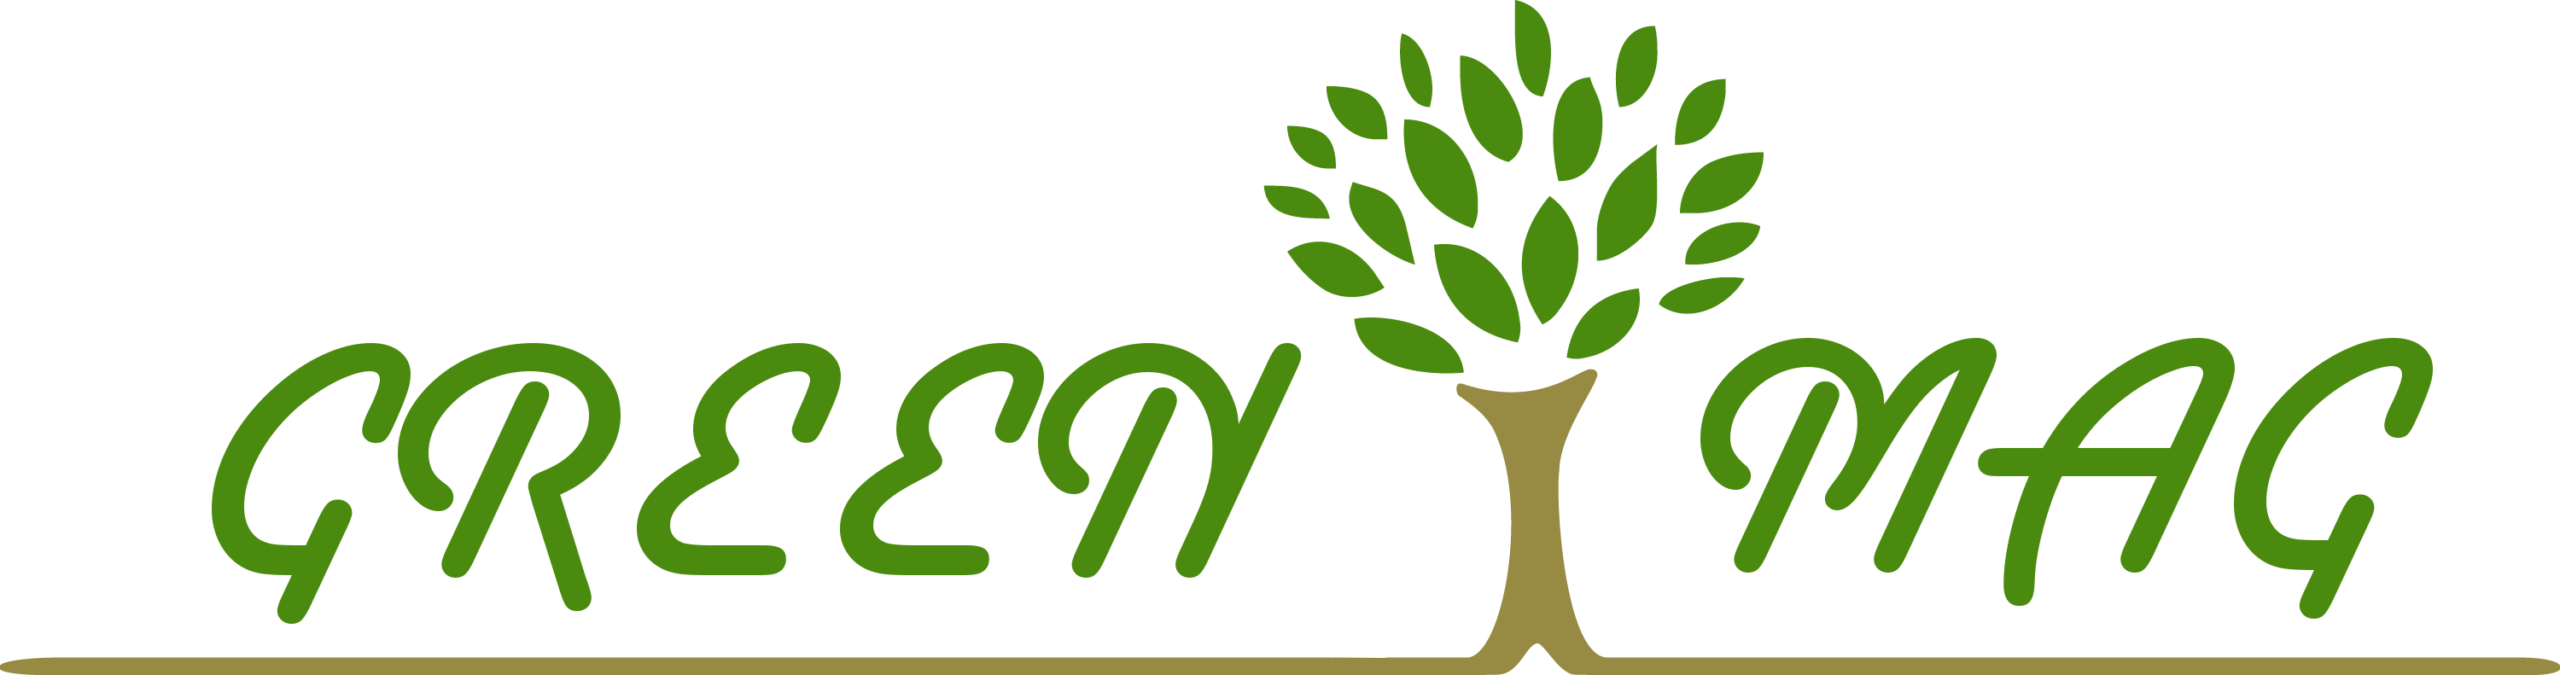 naturally-green_logo-1